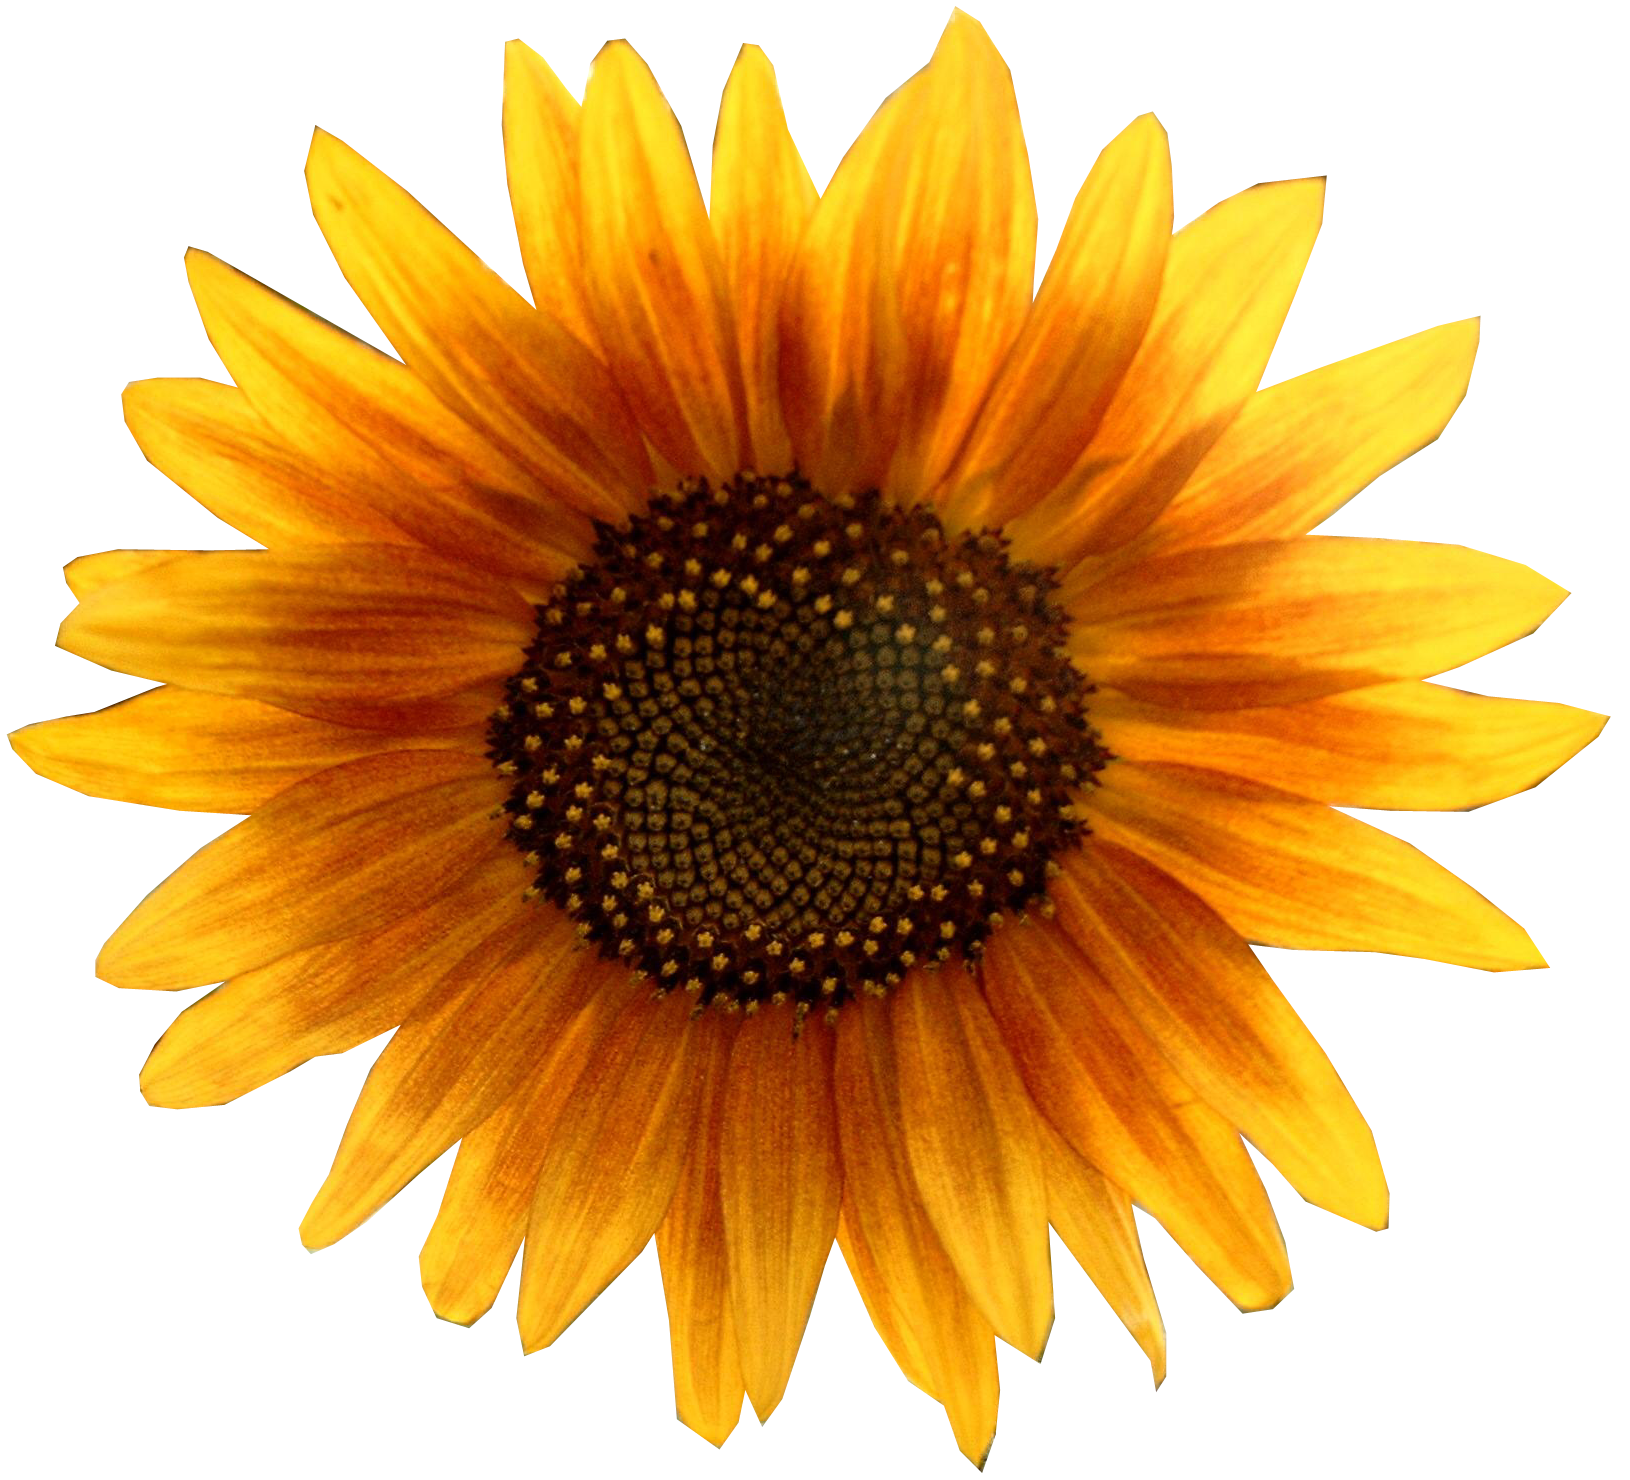 Sunflower PNG - Sunflowers PNG